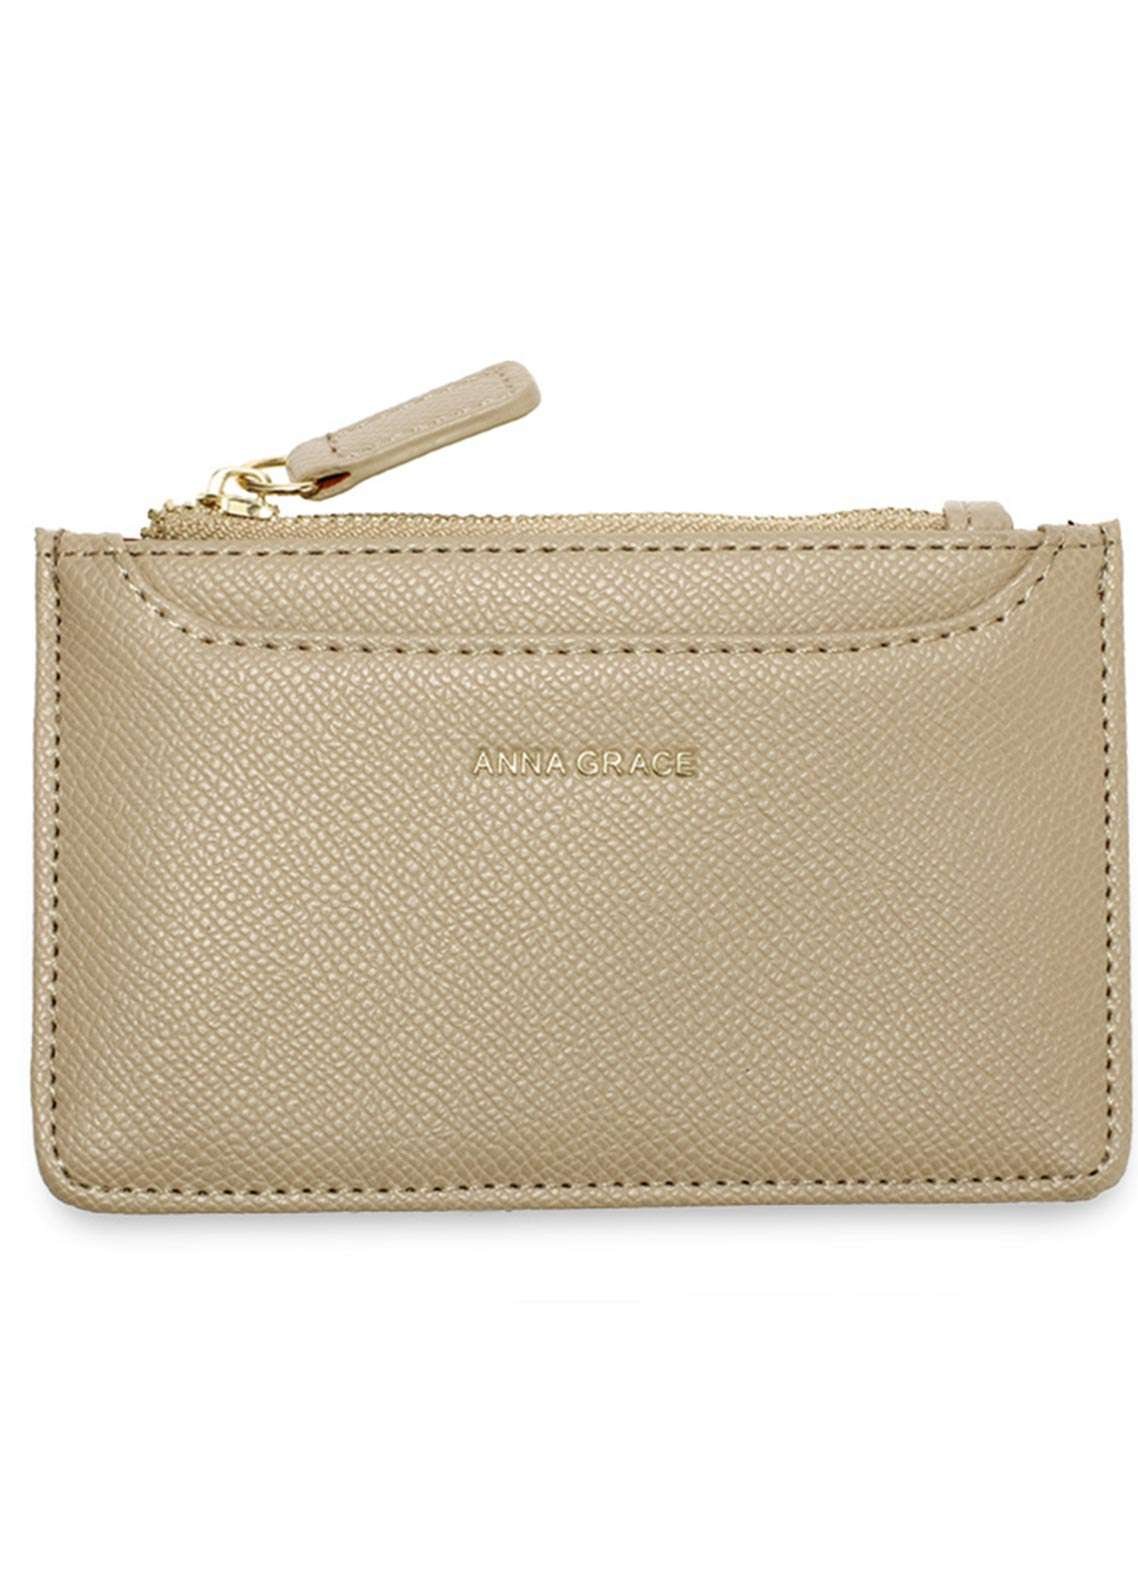 Anna Grace London Faux Leather Pouch   for Women  Nude with Rugged Texture